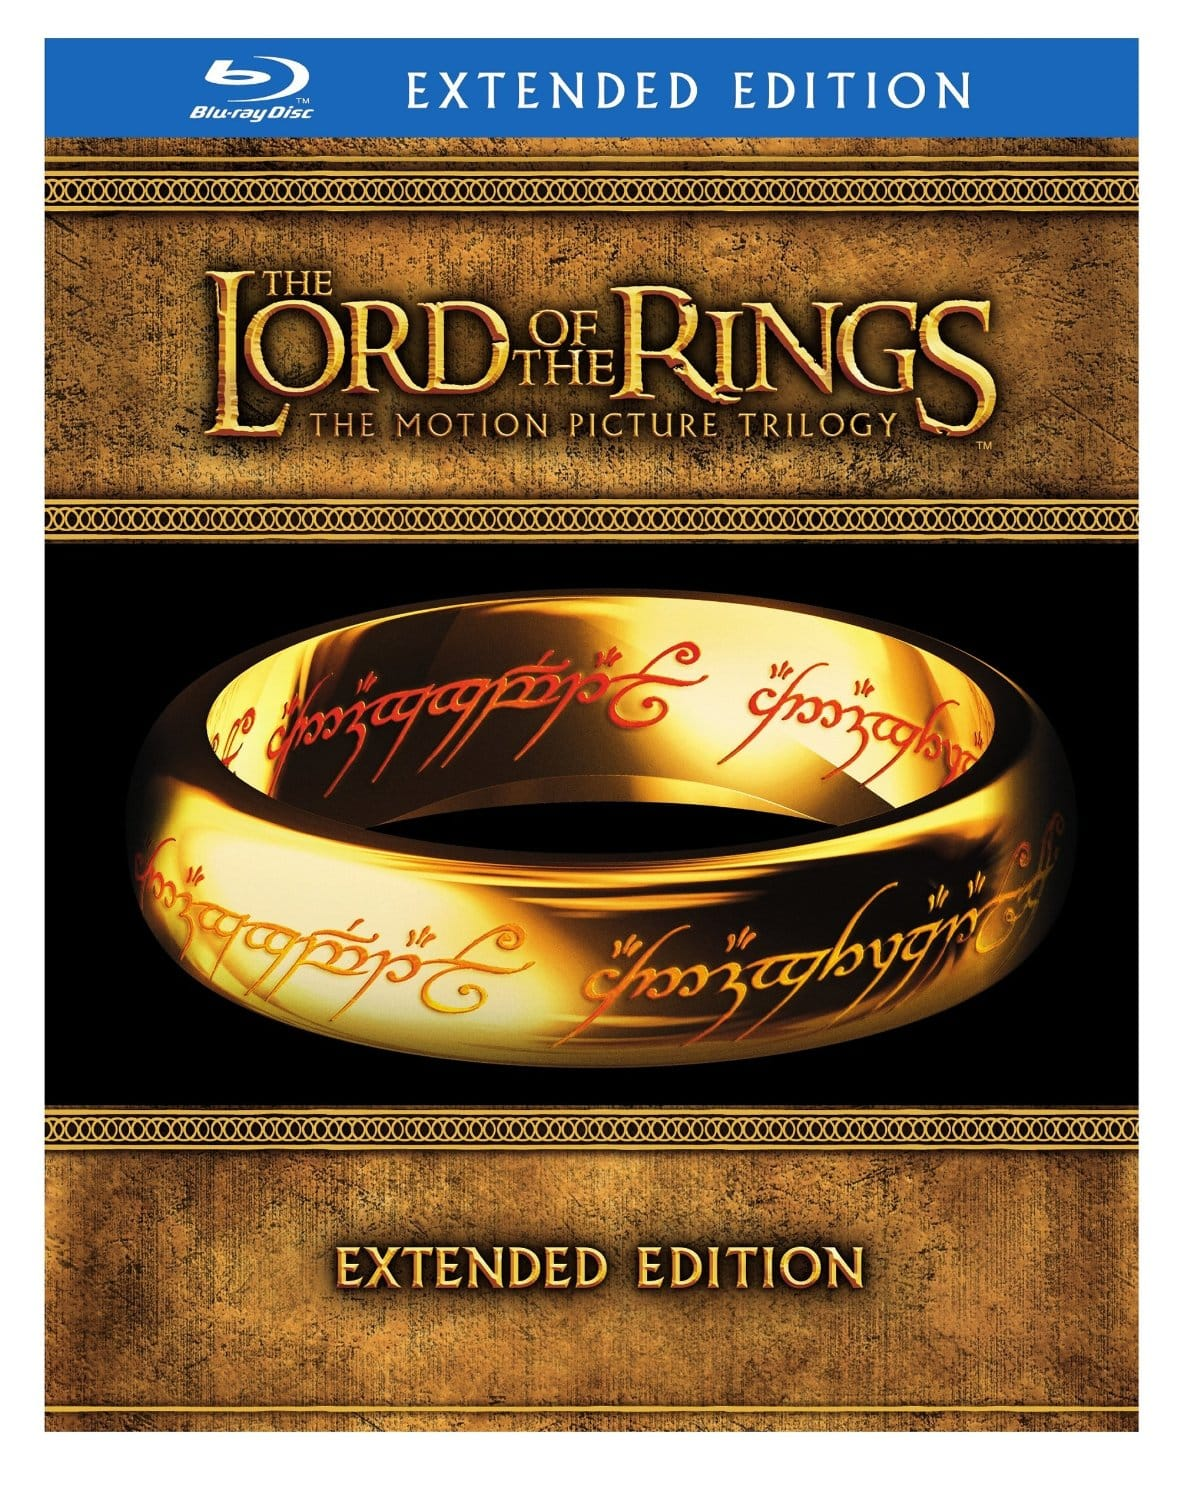 The Lord of the Rings: The Motion Picture Trilogy Extended Edition (Blu-Ray) $26.99 via Amazon